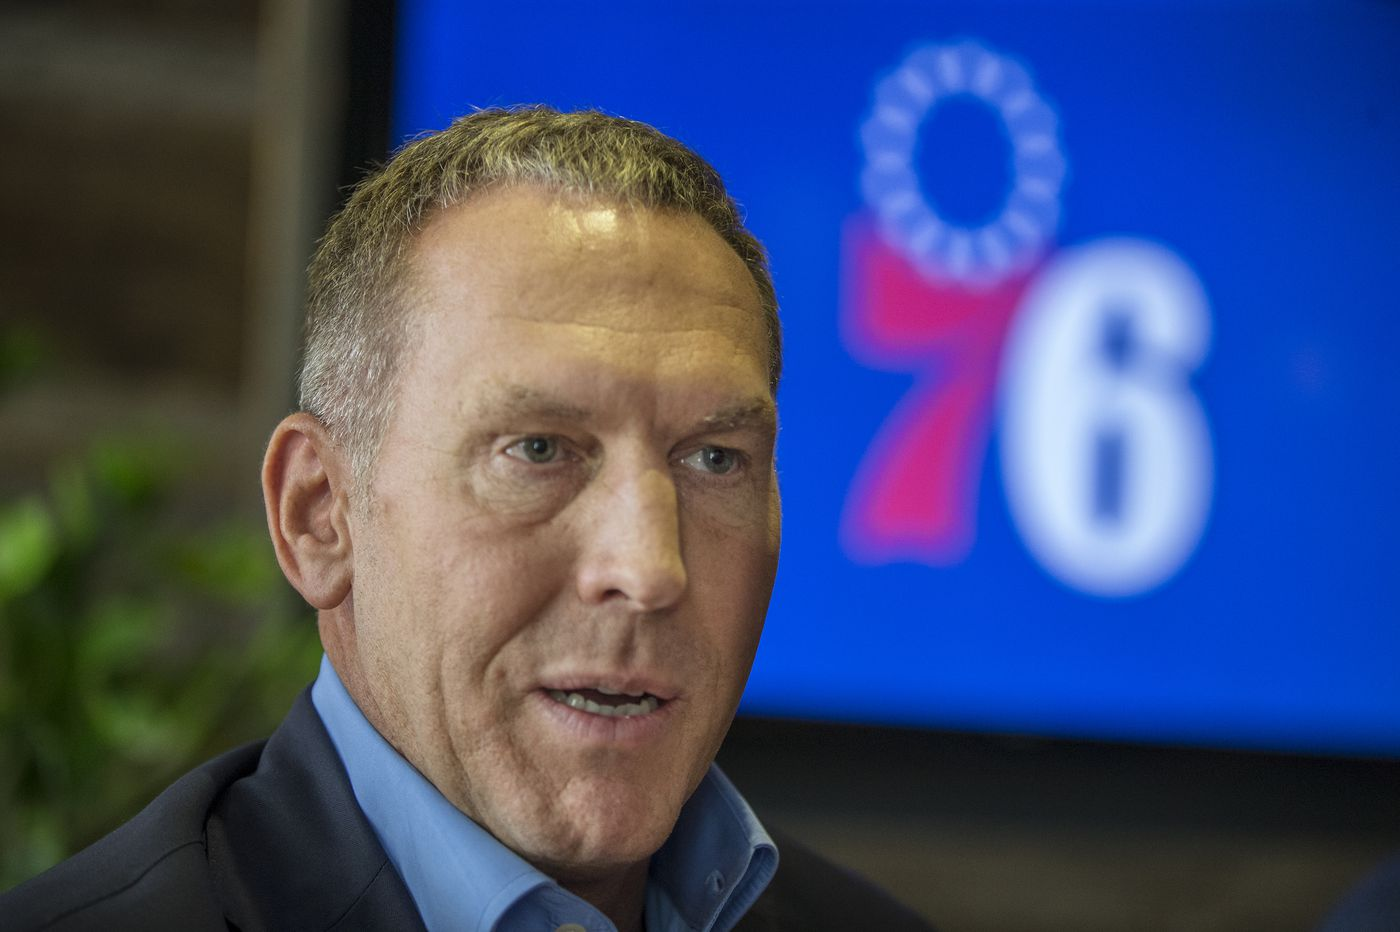 Barbara Bottini's Twitter act cost Bryan Colangelo his job with Sixers